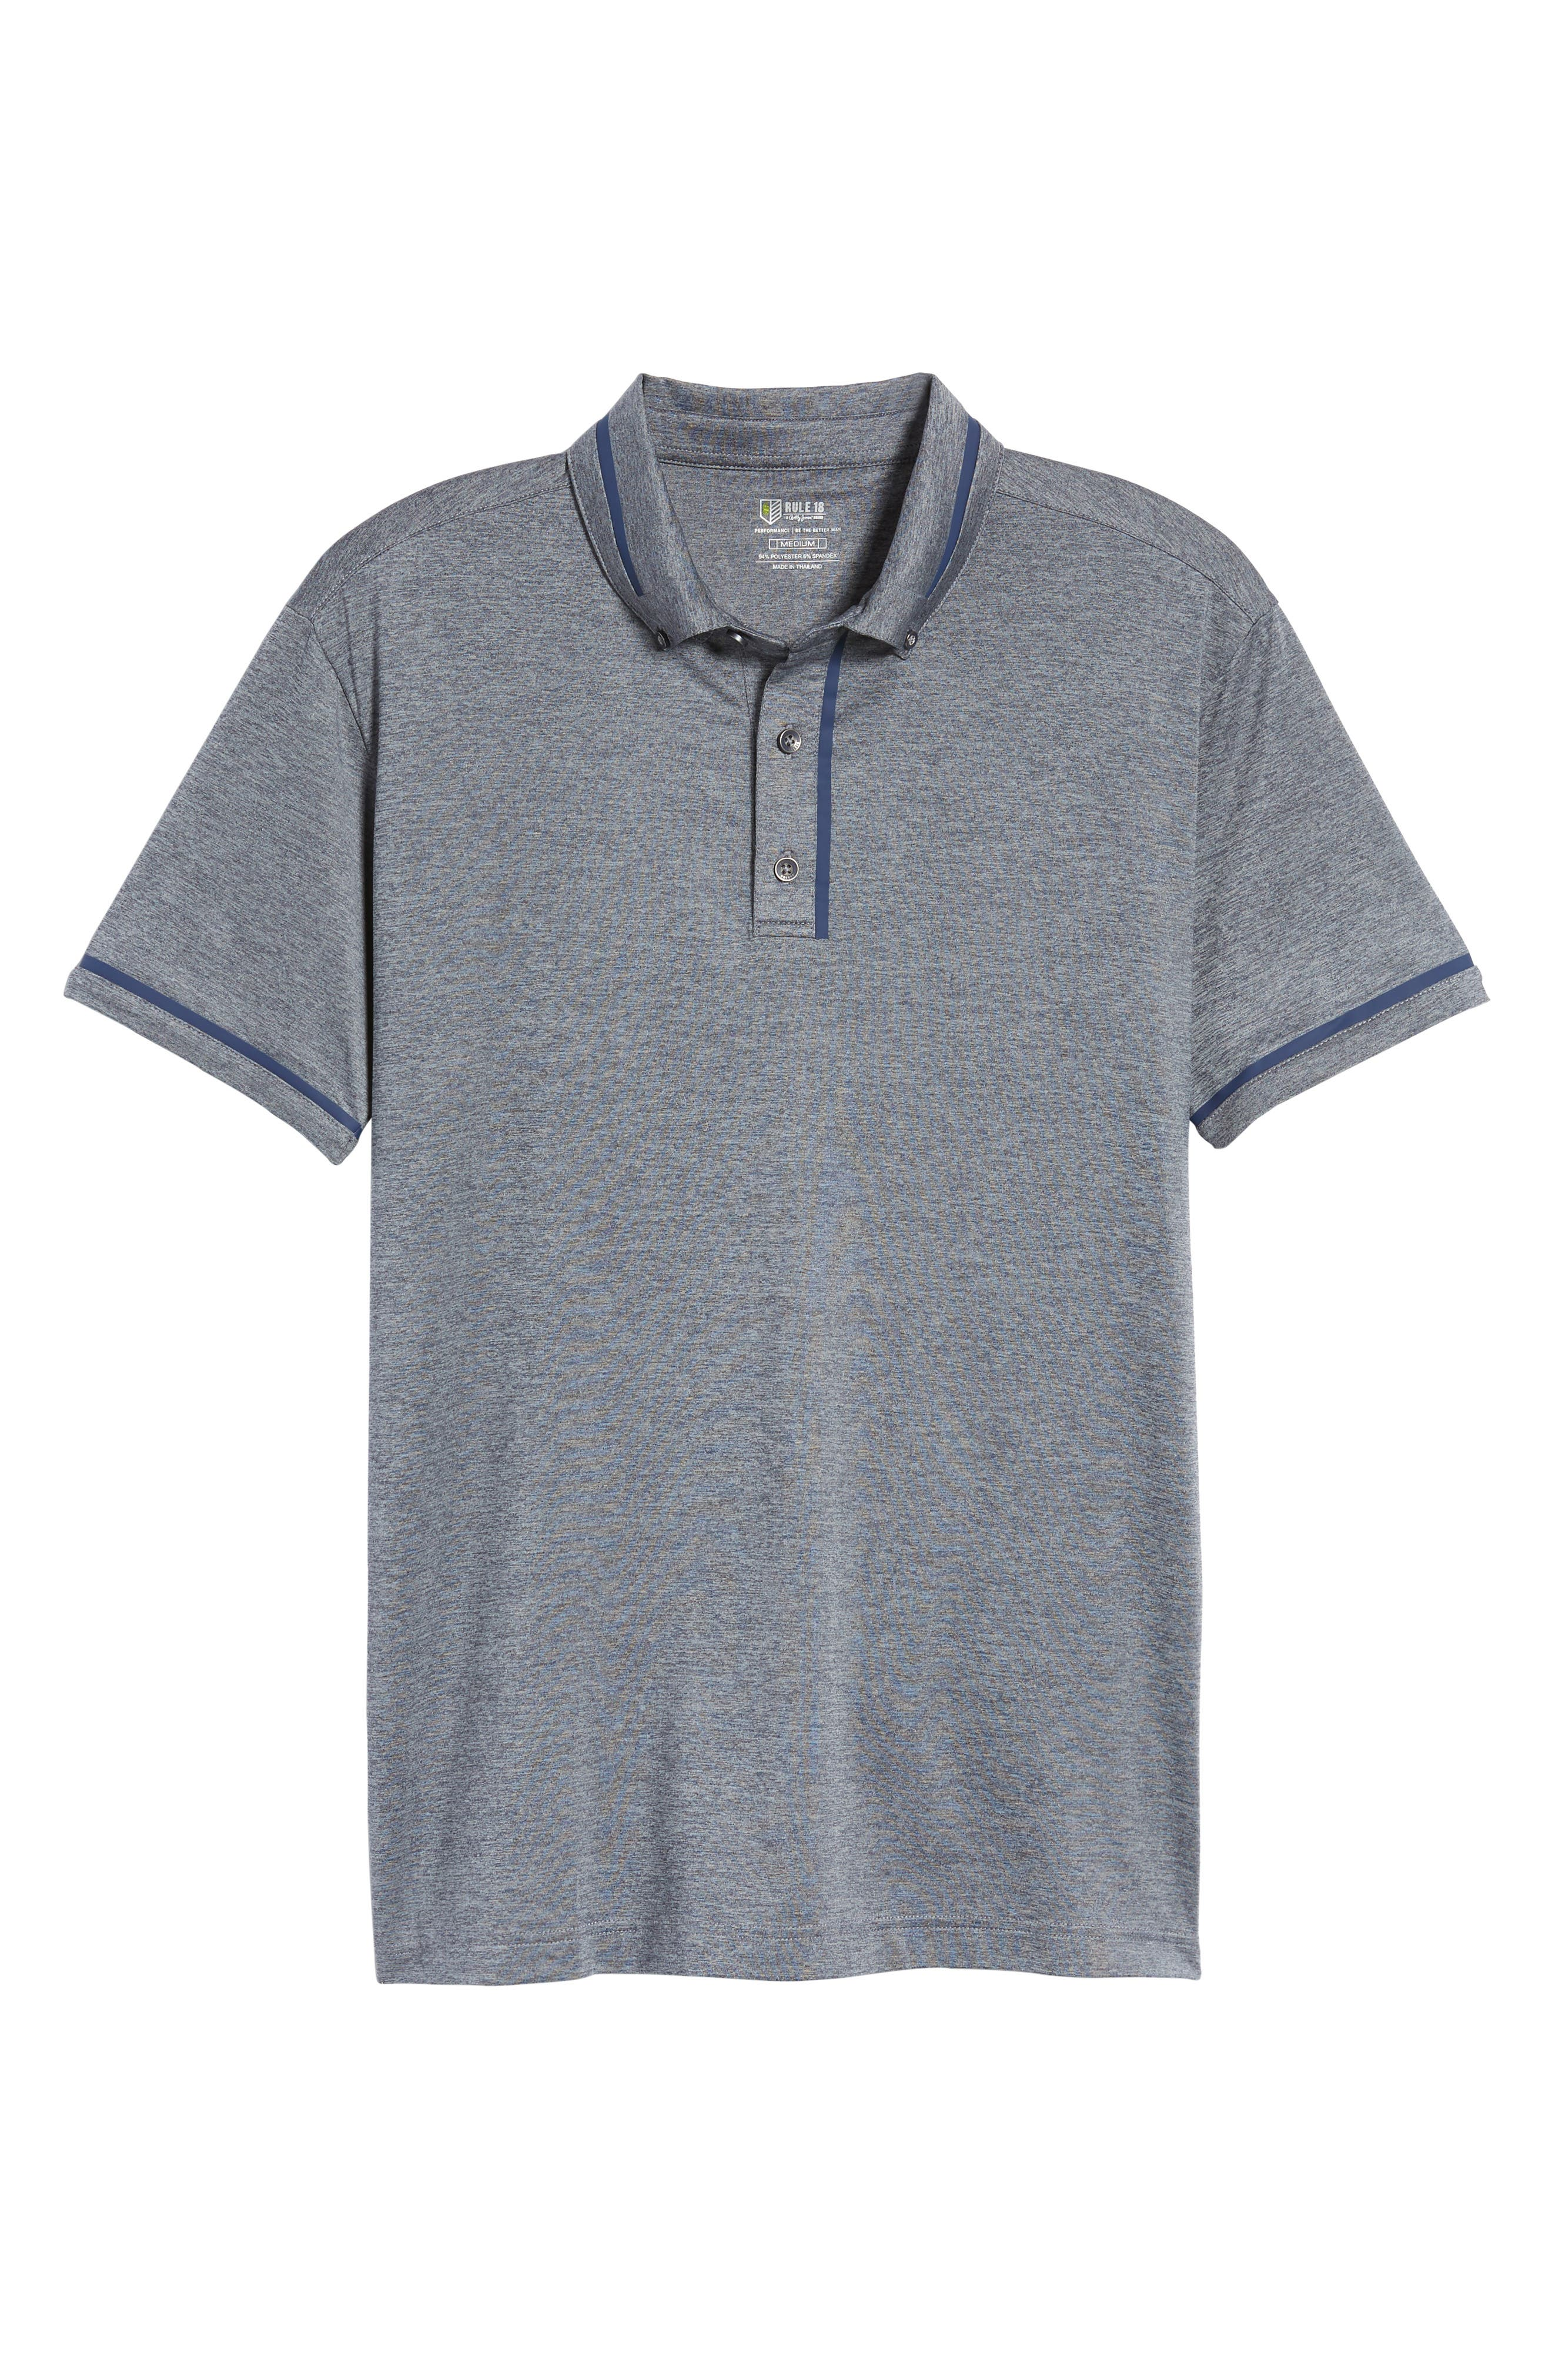 Alternate Image 5  - Bobby Jones R18 Tech Chapman Welded Trim Polo